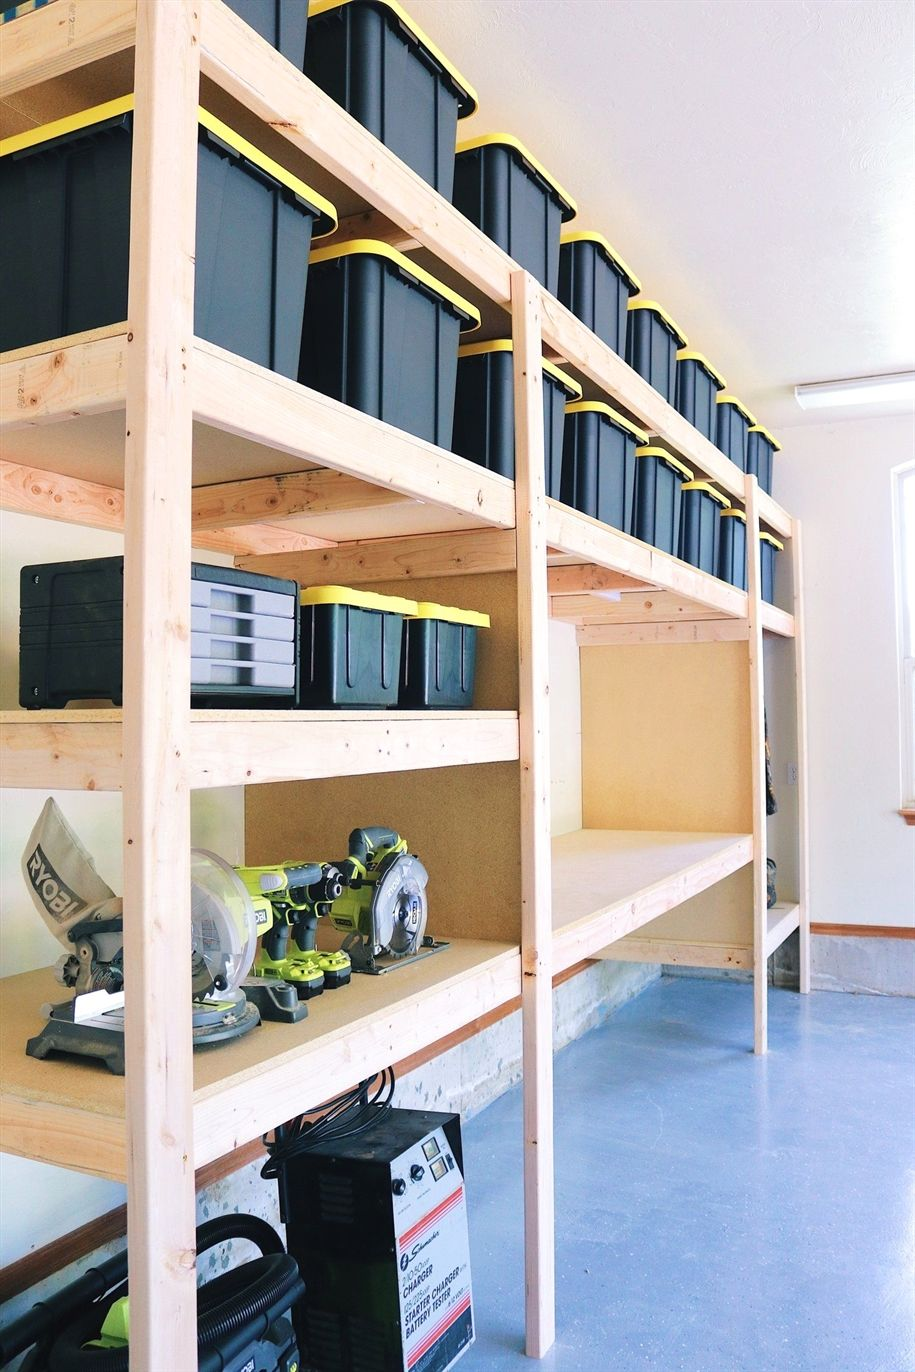 plans for garage shelves the ultimate garage storage workbench solution by mike montgomery modern builds free 8908